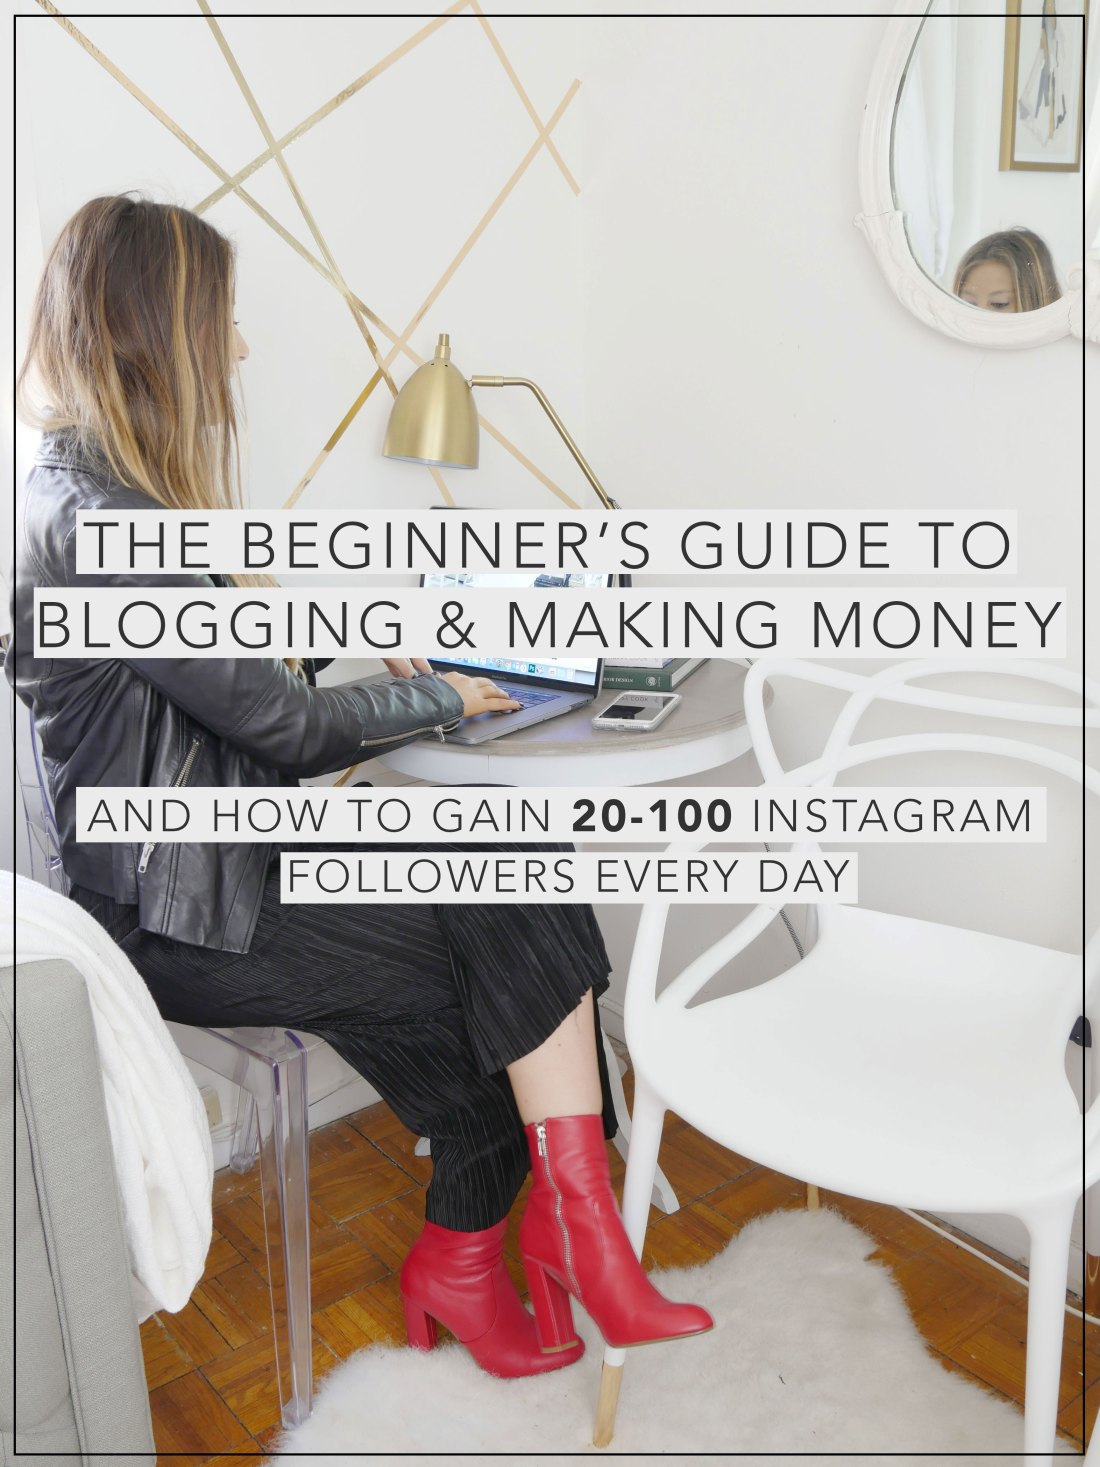 Within a year of starting my blog, I have: made constant $$$ per month, been published in 2 magazines & gain 100 Instagram followers every day using a strict formula. Learn how to do start a blog & make quick money with these fail-proof tips. PLUS learn how to gain Instagram followers every day. #bloggingforbeginners #bloggingformoney #bloggingtips #bloggingideas #instagramtips #instagramalgorithm #earnextramoney #howtogainfollowersoninstagram #startingyourownblog #bloggingideas #instagramtricks